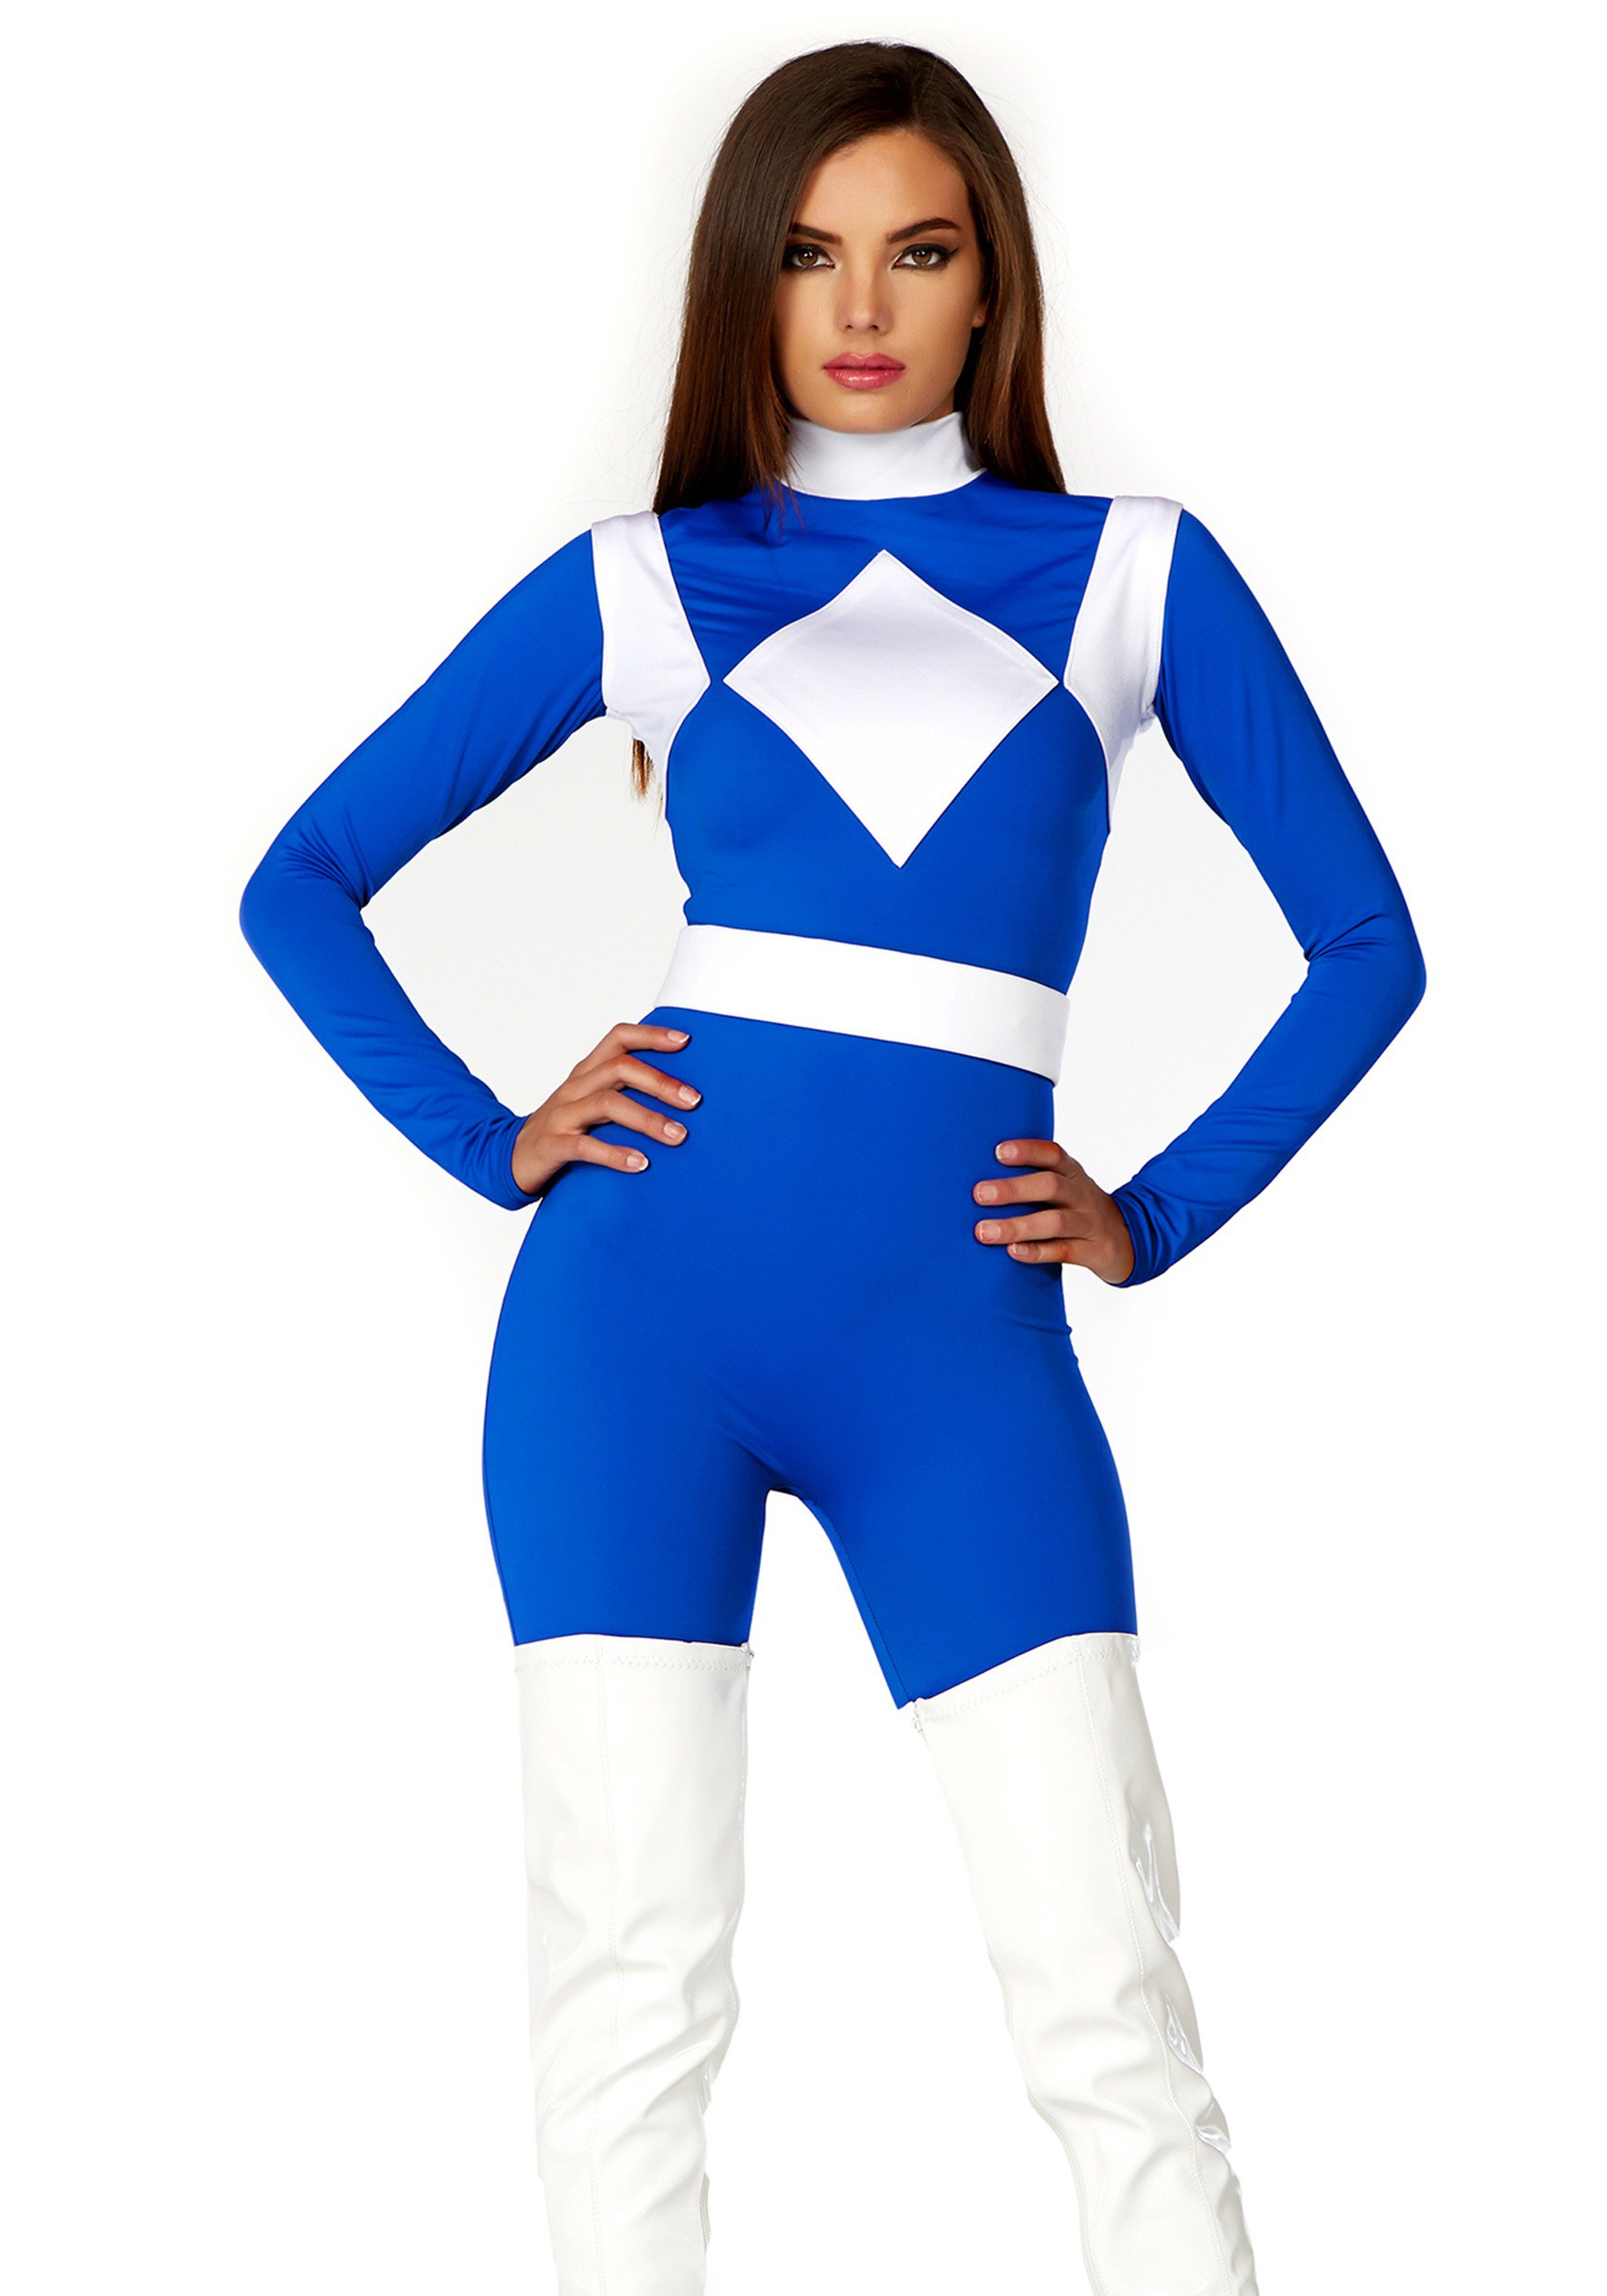 Women's Dominance Action Figure Blue Catsuit FP555209